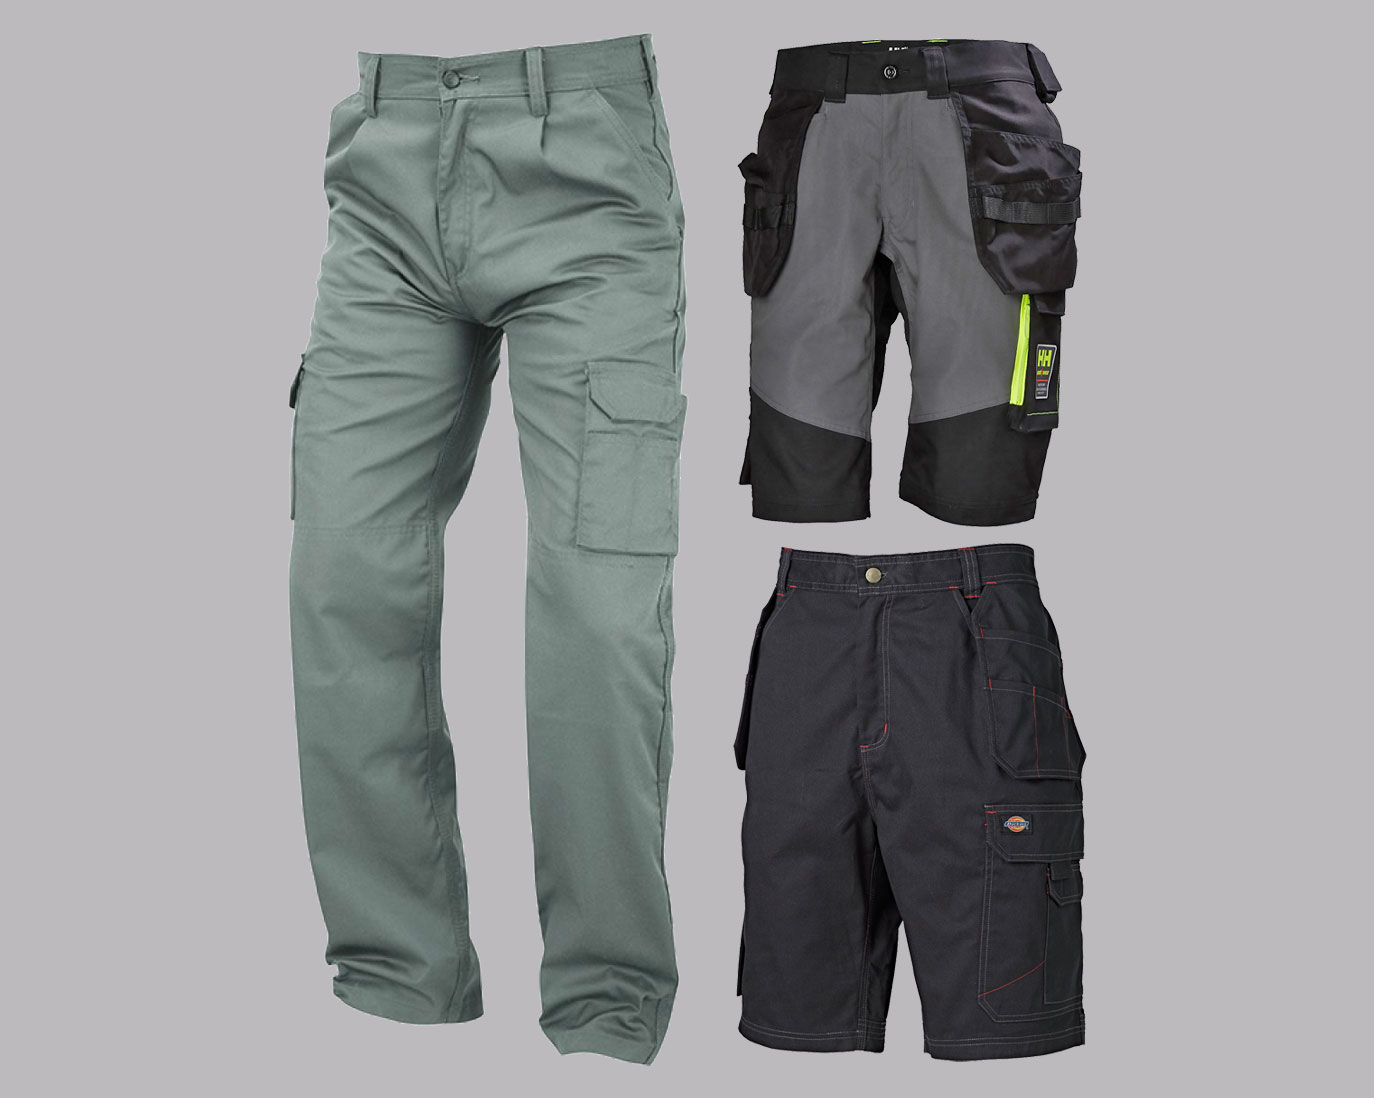 Non Kneepad Trousers & Shorts